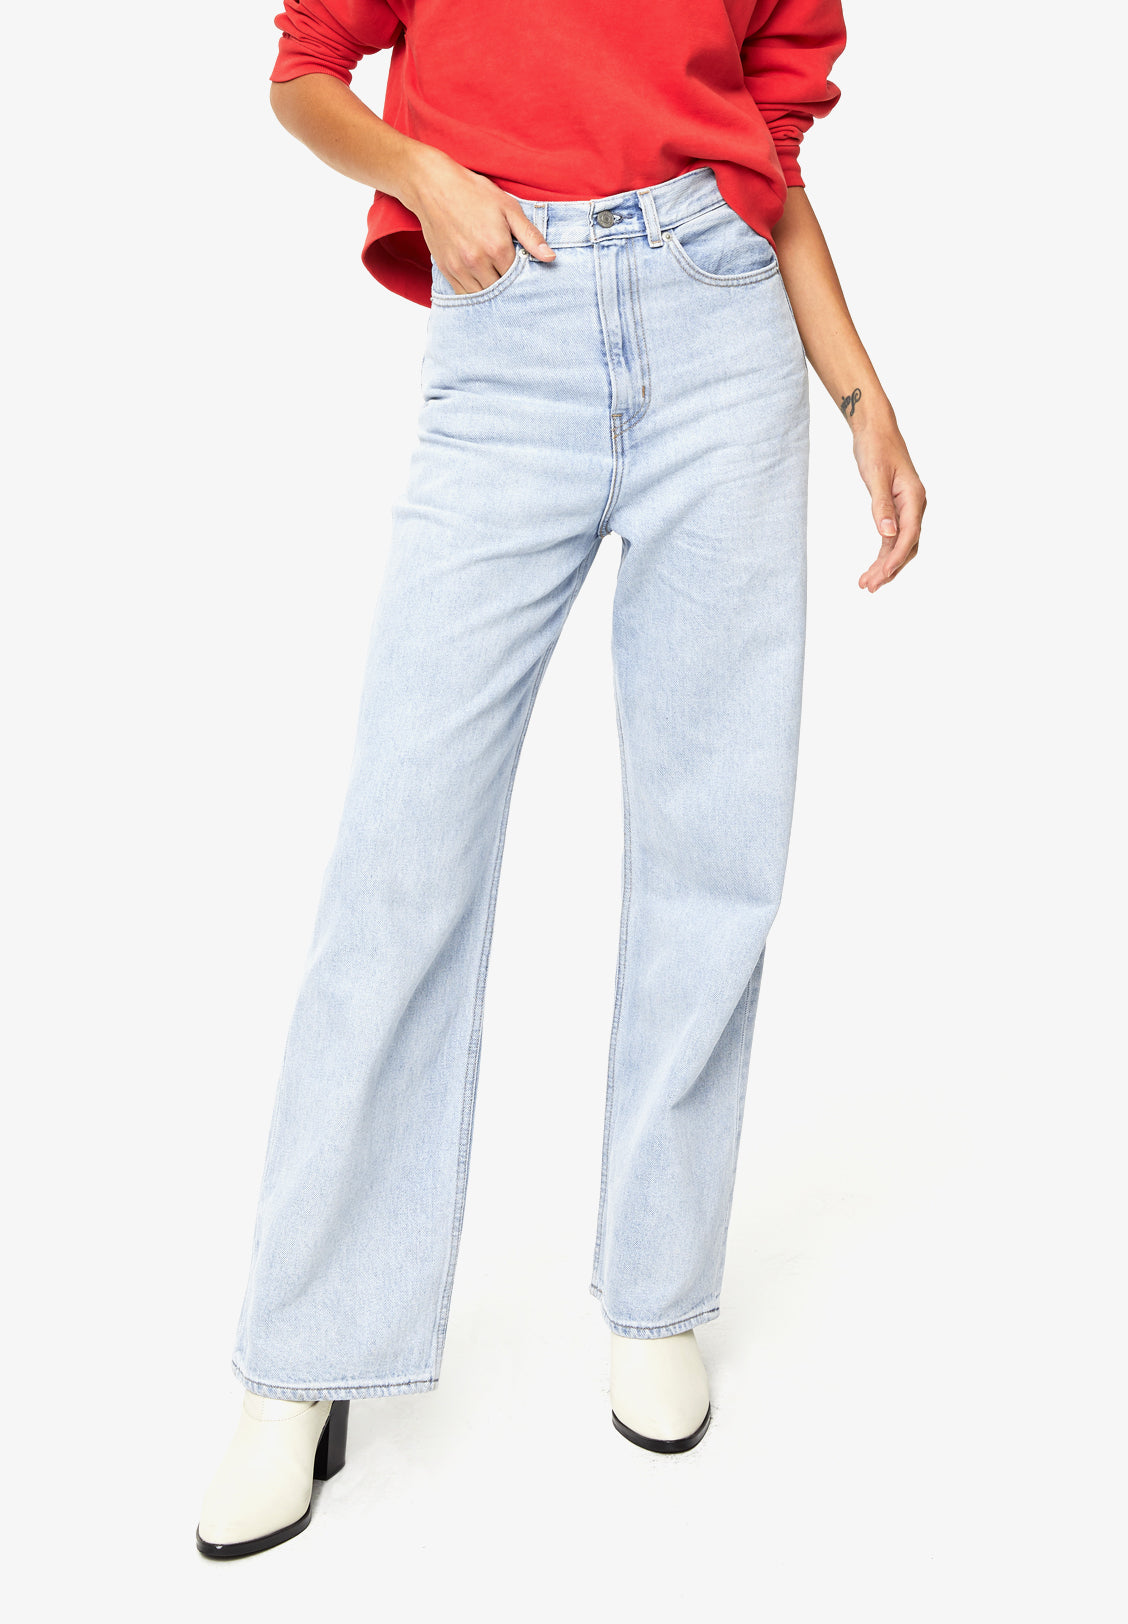 LEVI'S – WOMENS HIGH LOOSE, LOOSEY GOOSEY